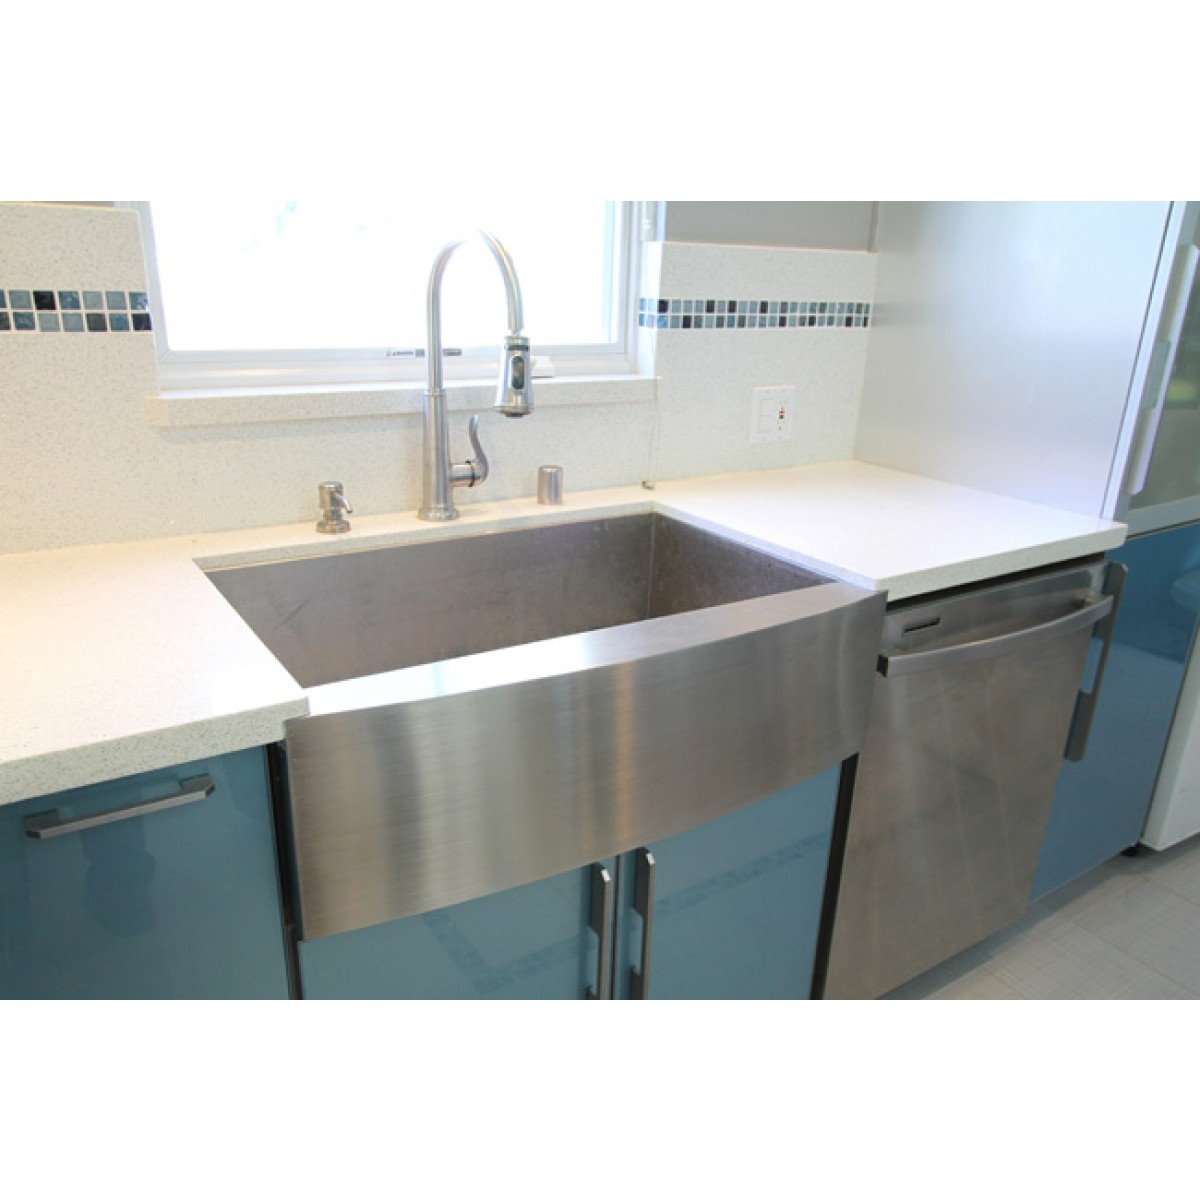 Jan S Kitchen Sink: 36 Inch Stainless Steel Single Bowl Curved Front Farm